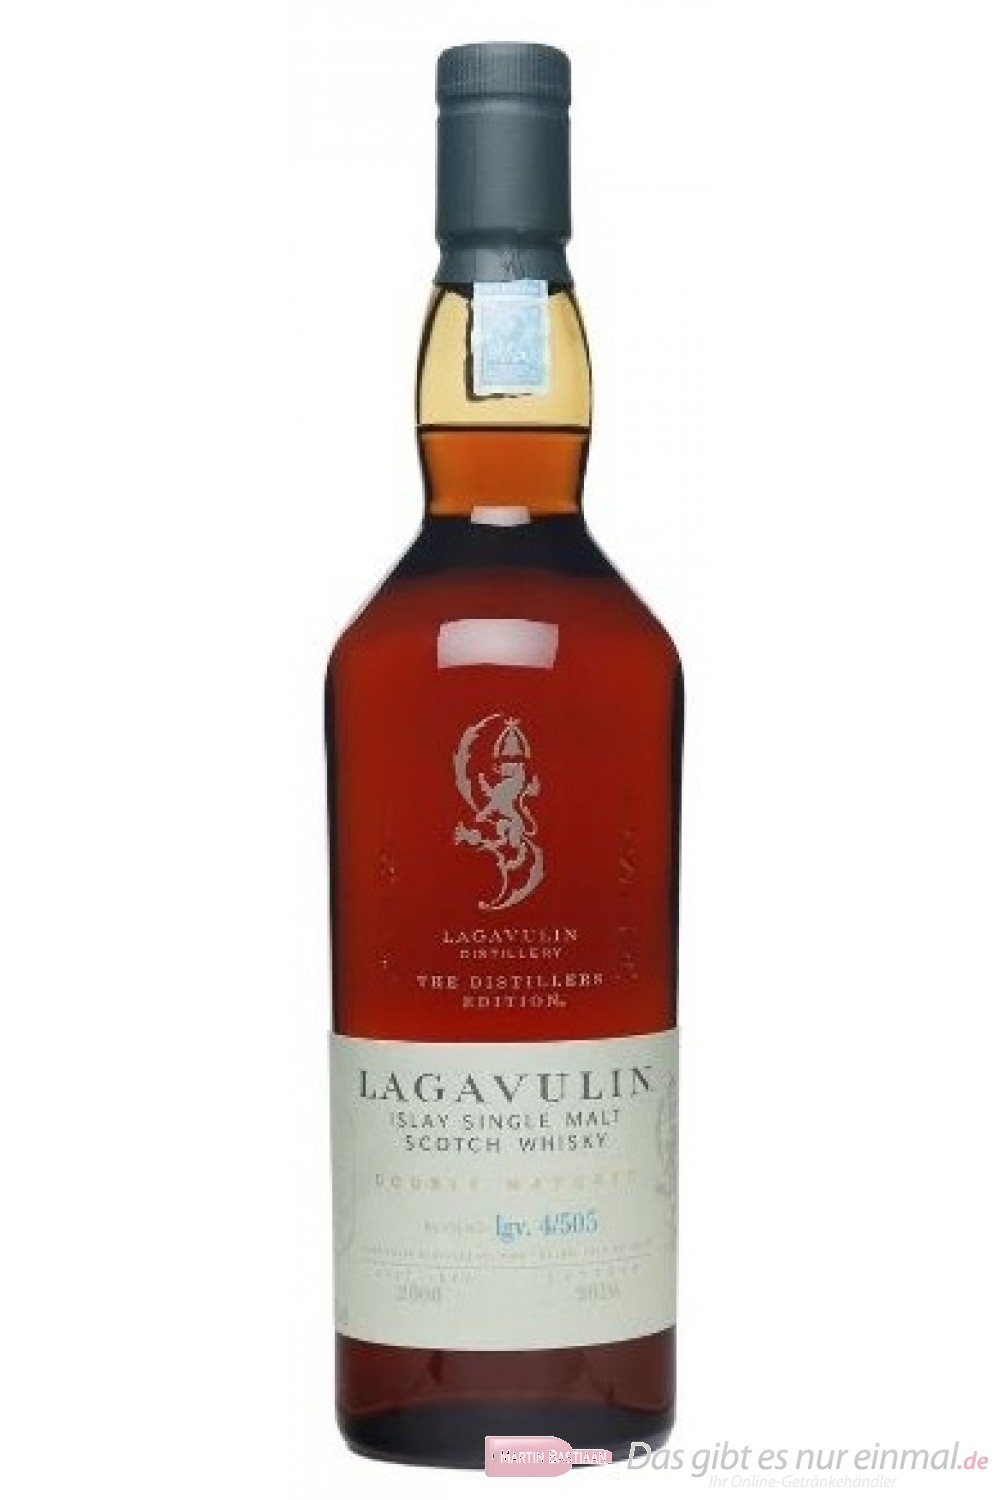 Lagavulin Distillers Edition 2016/2000 ohne GP